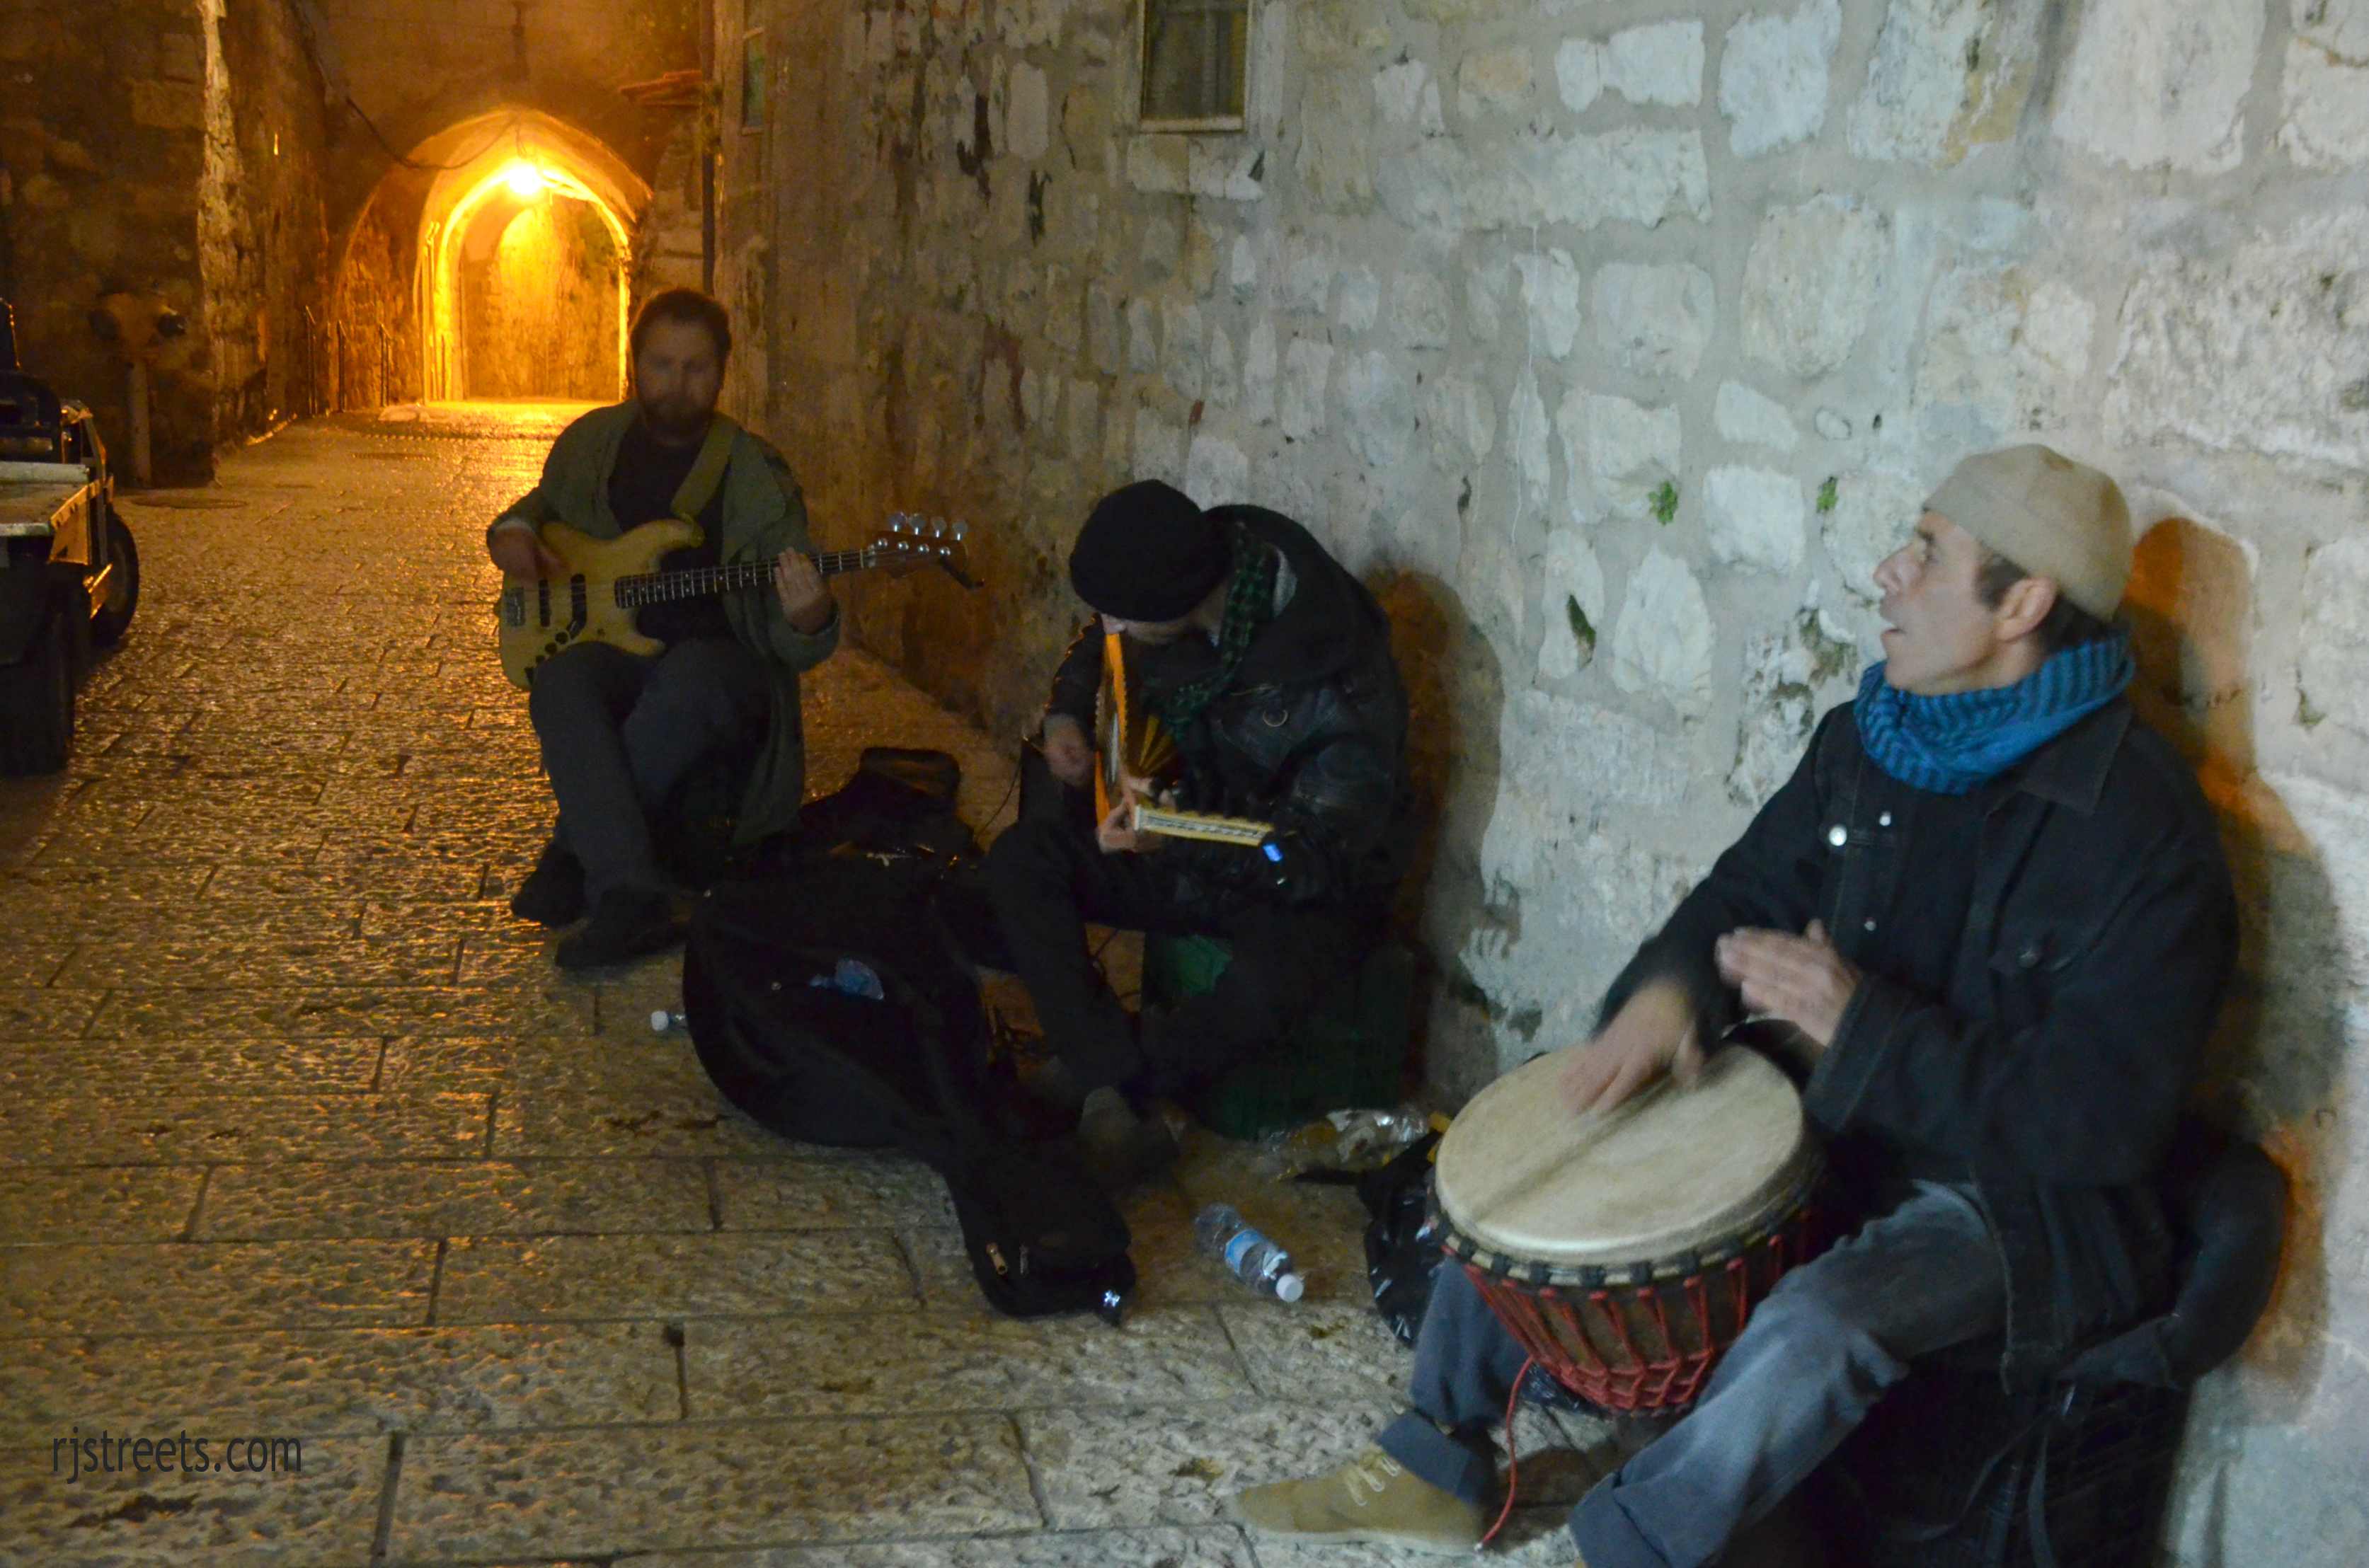 musicians on Jerusalem Old City street for Sounds of Old City Festival